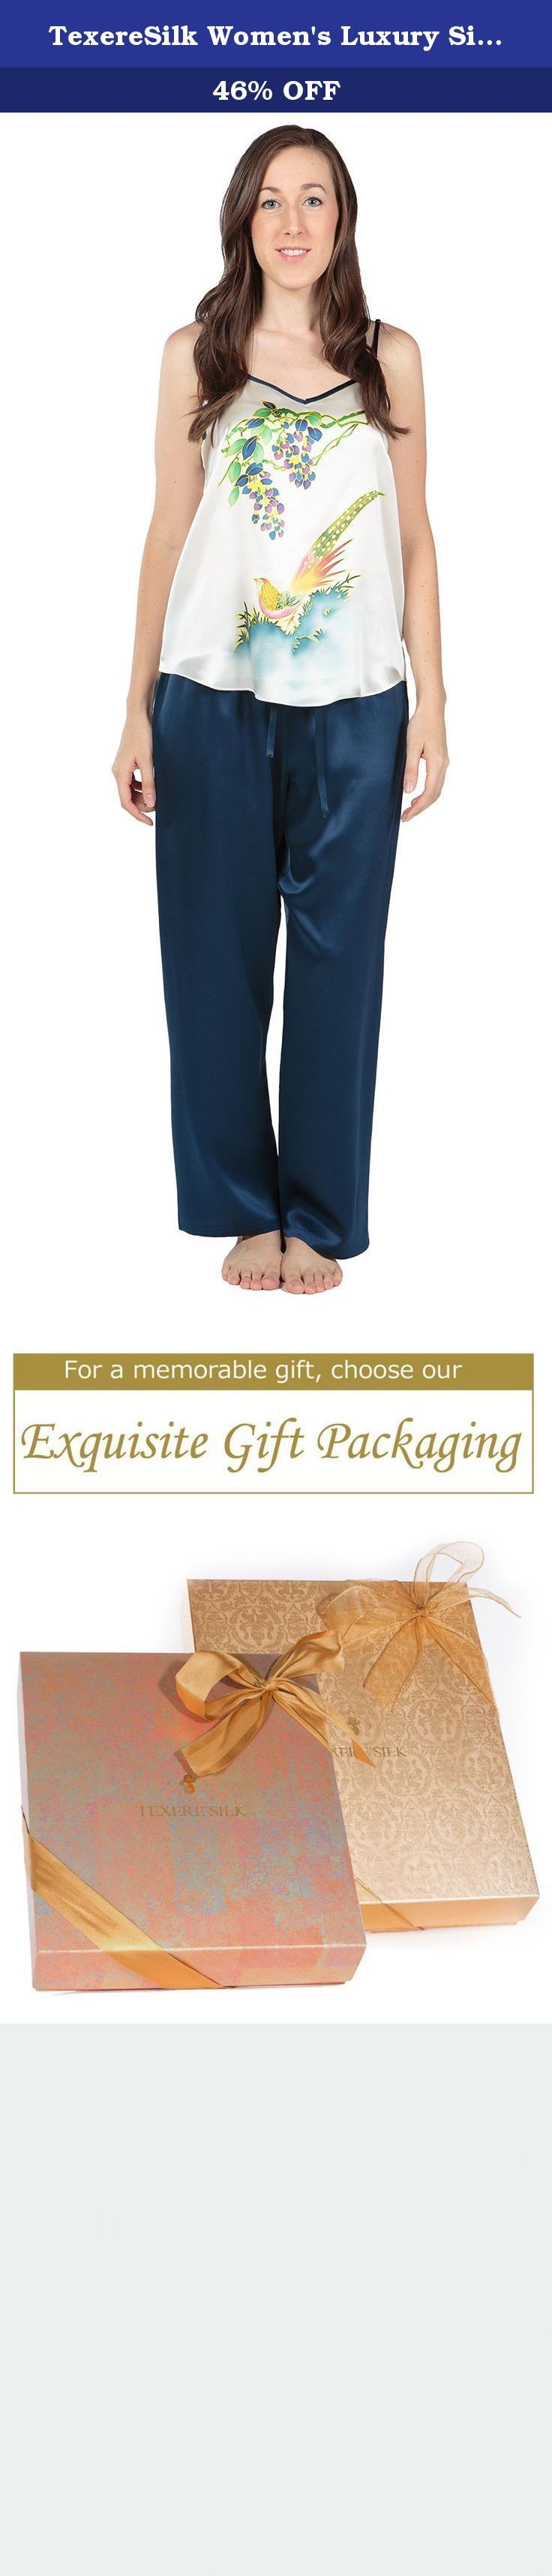 TexereSilk Women's Luxury Silk Pajama Set (Phoenix Paradise, Natural White, Medium) Popular Gifts for Women WS0005-NWH-M. An enchanting hand painting of a phoenix decorates this playful pajama set. Features adjustable strap with durable brass sliders as well as an elasticized waist with drawstring for optimal fit. Makes a great gift for any occasion.